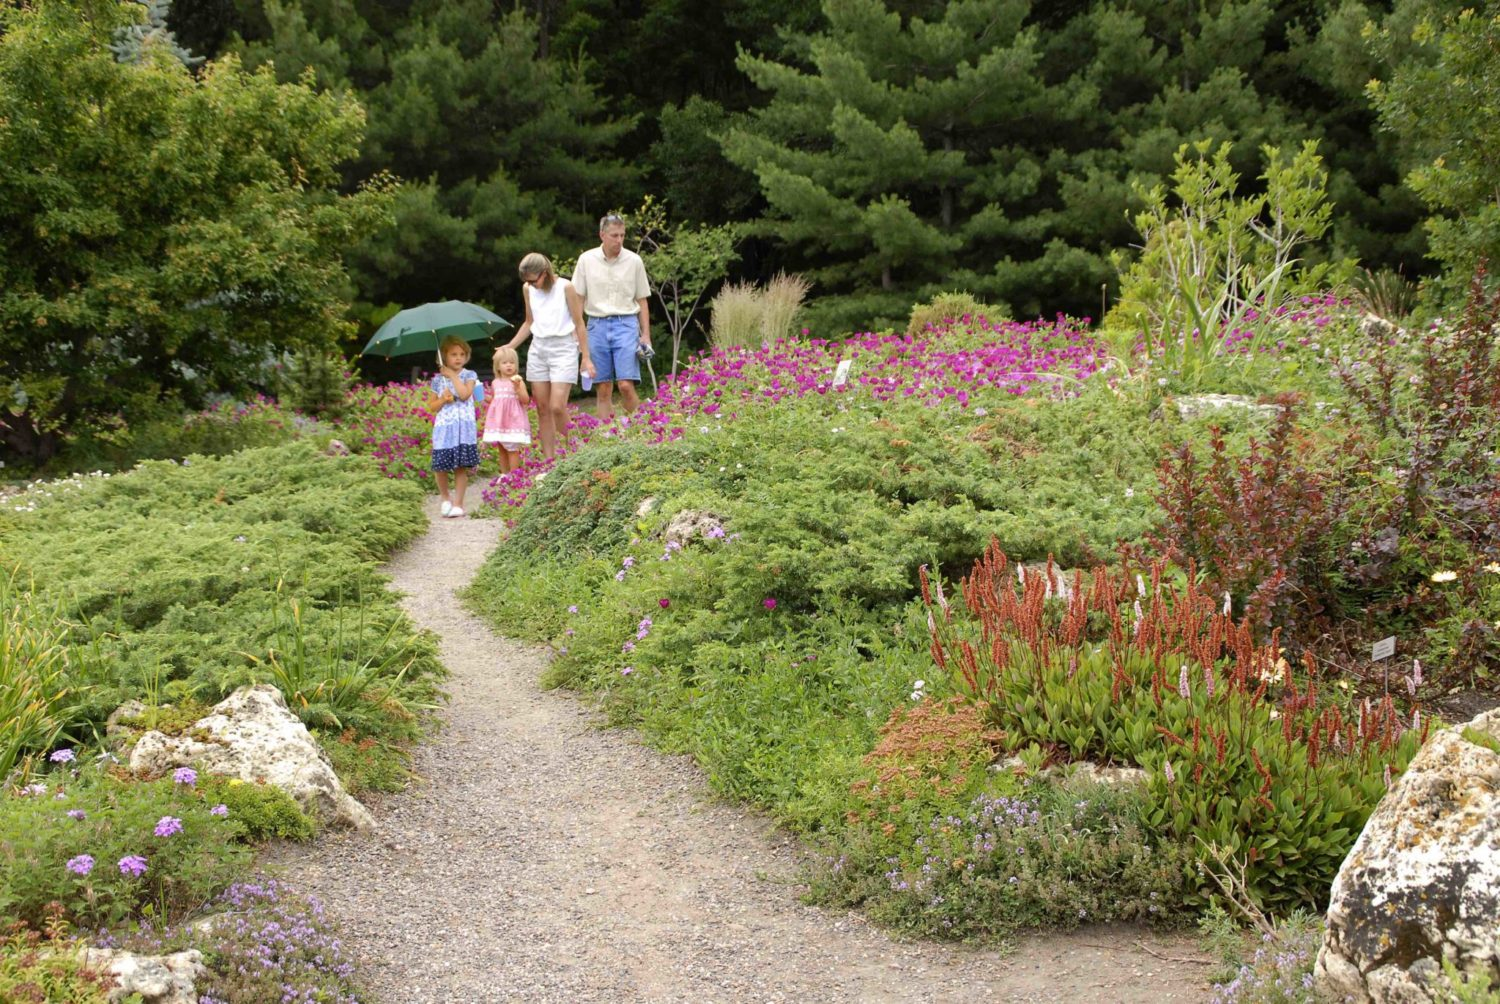 A Family Walks Down The Gently Curving Path Of The Peace Garden While  Admiring The Flowers